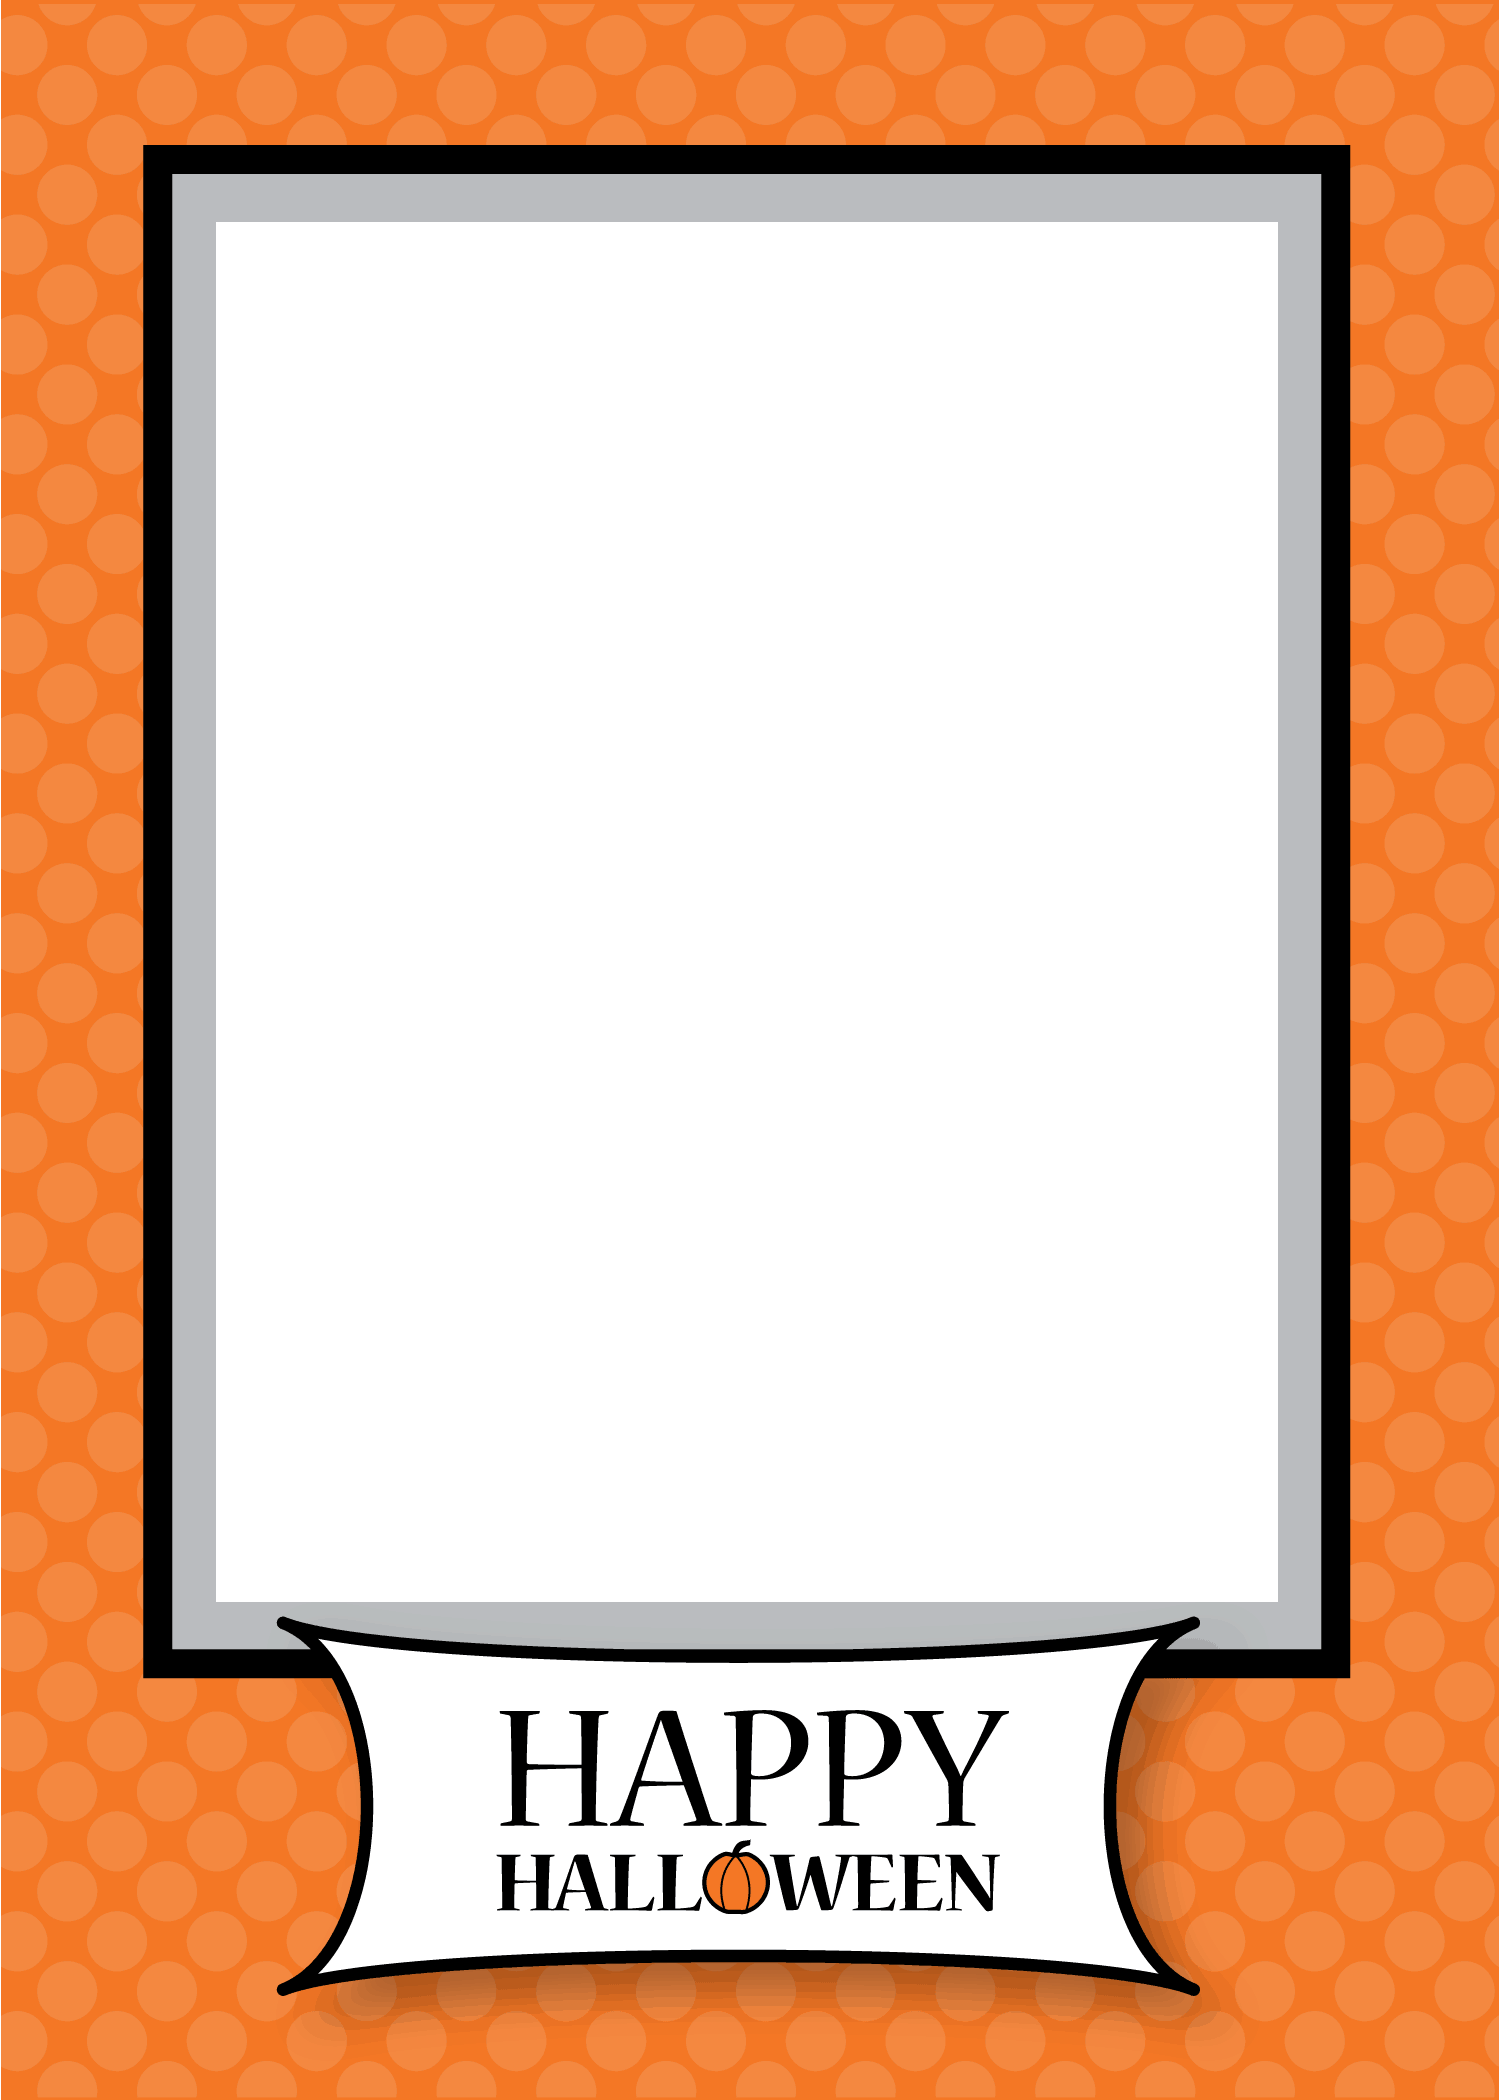 Free Halloween 5x7 Card Template - Living Locurto